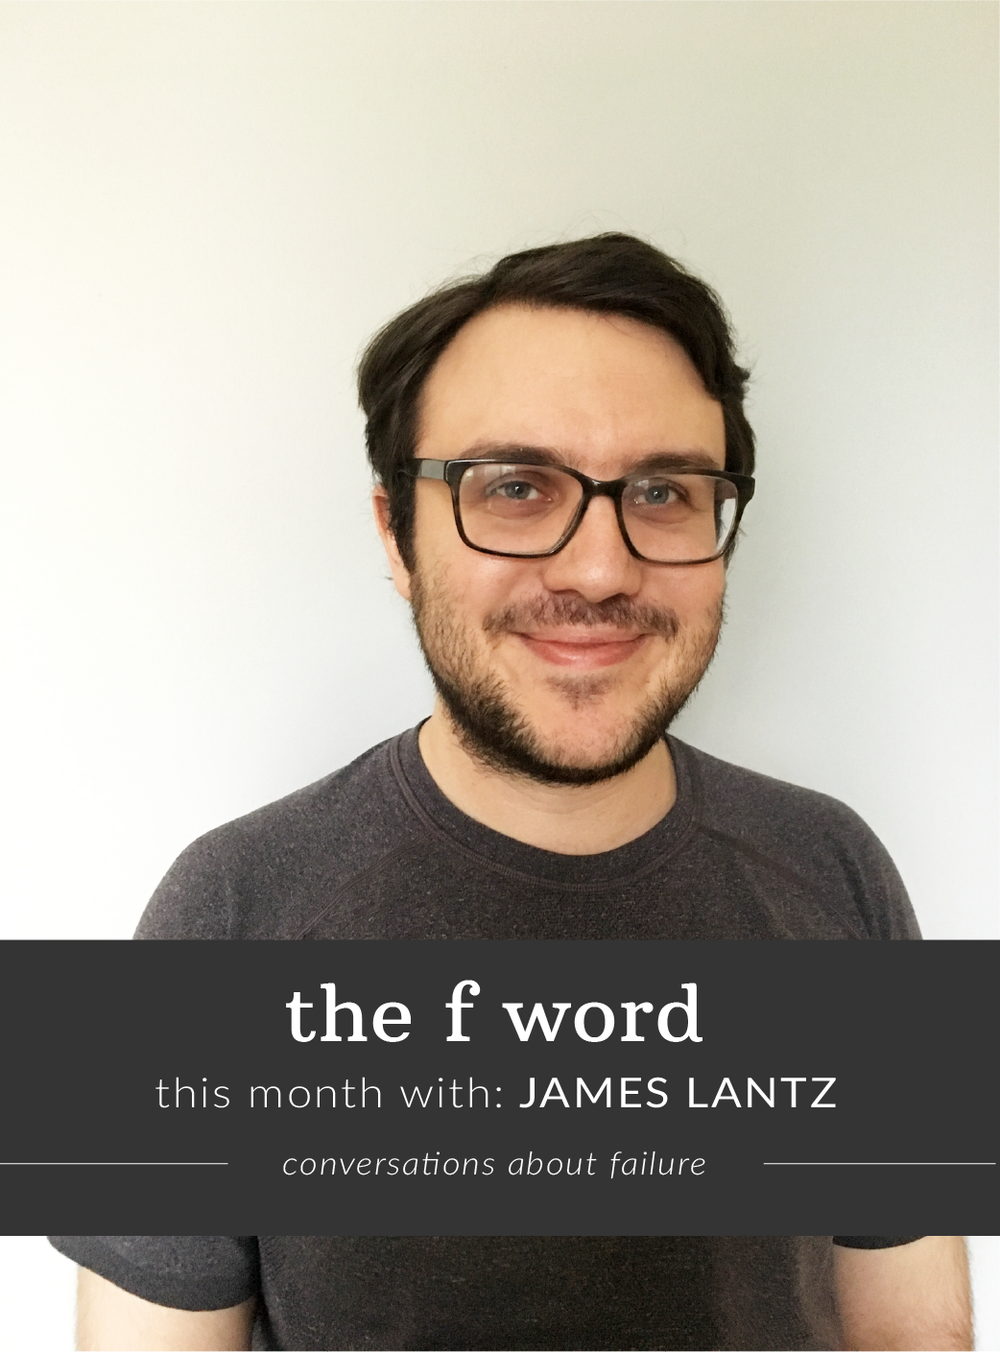 James Lantz talks to us and Mara Savina Falstein about failure, as part of our interview series The F Word